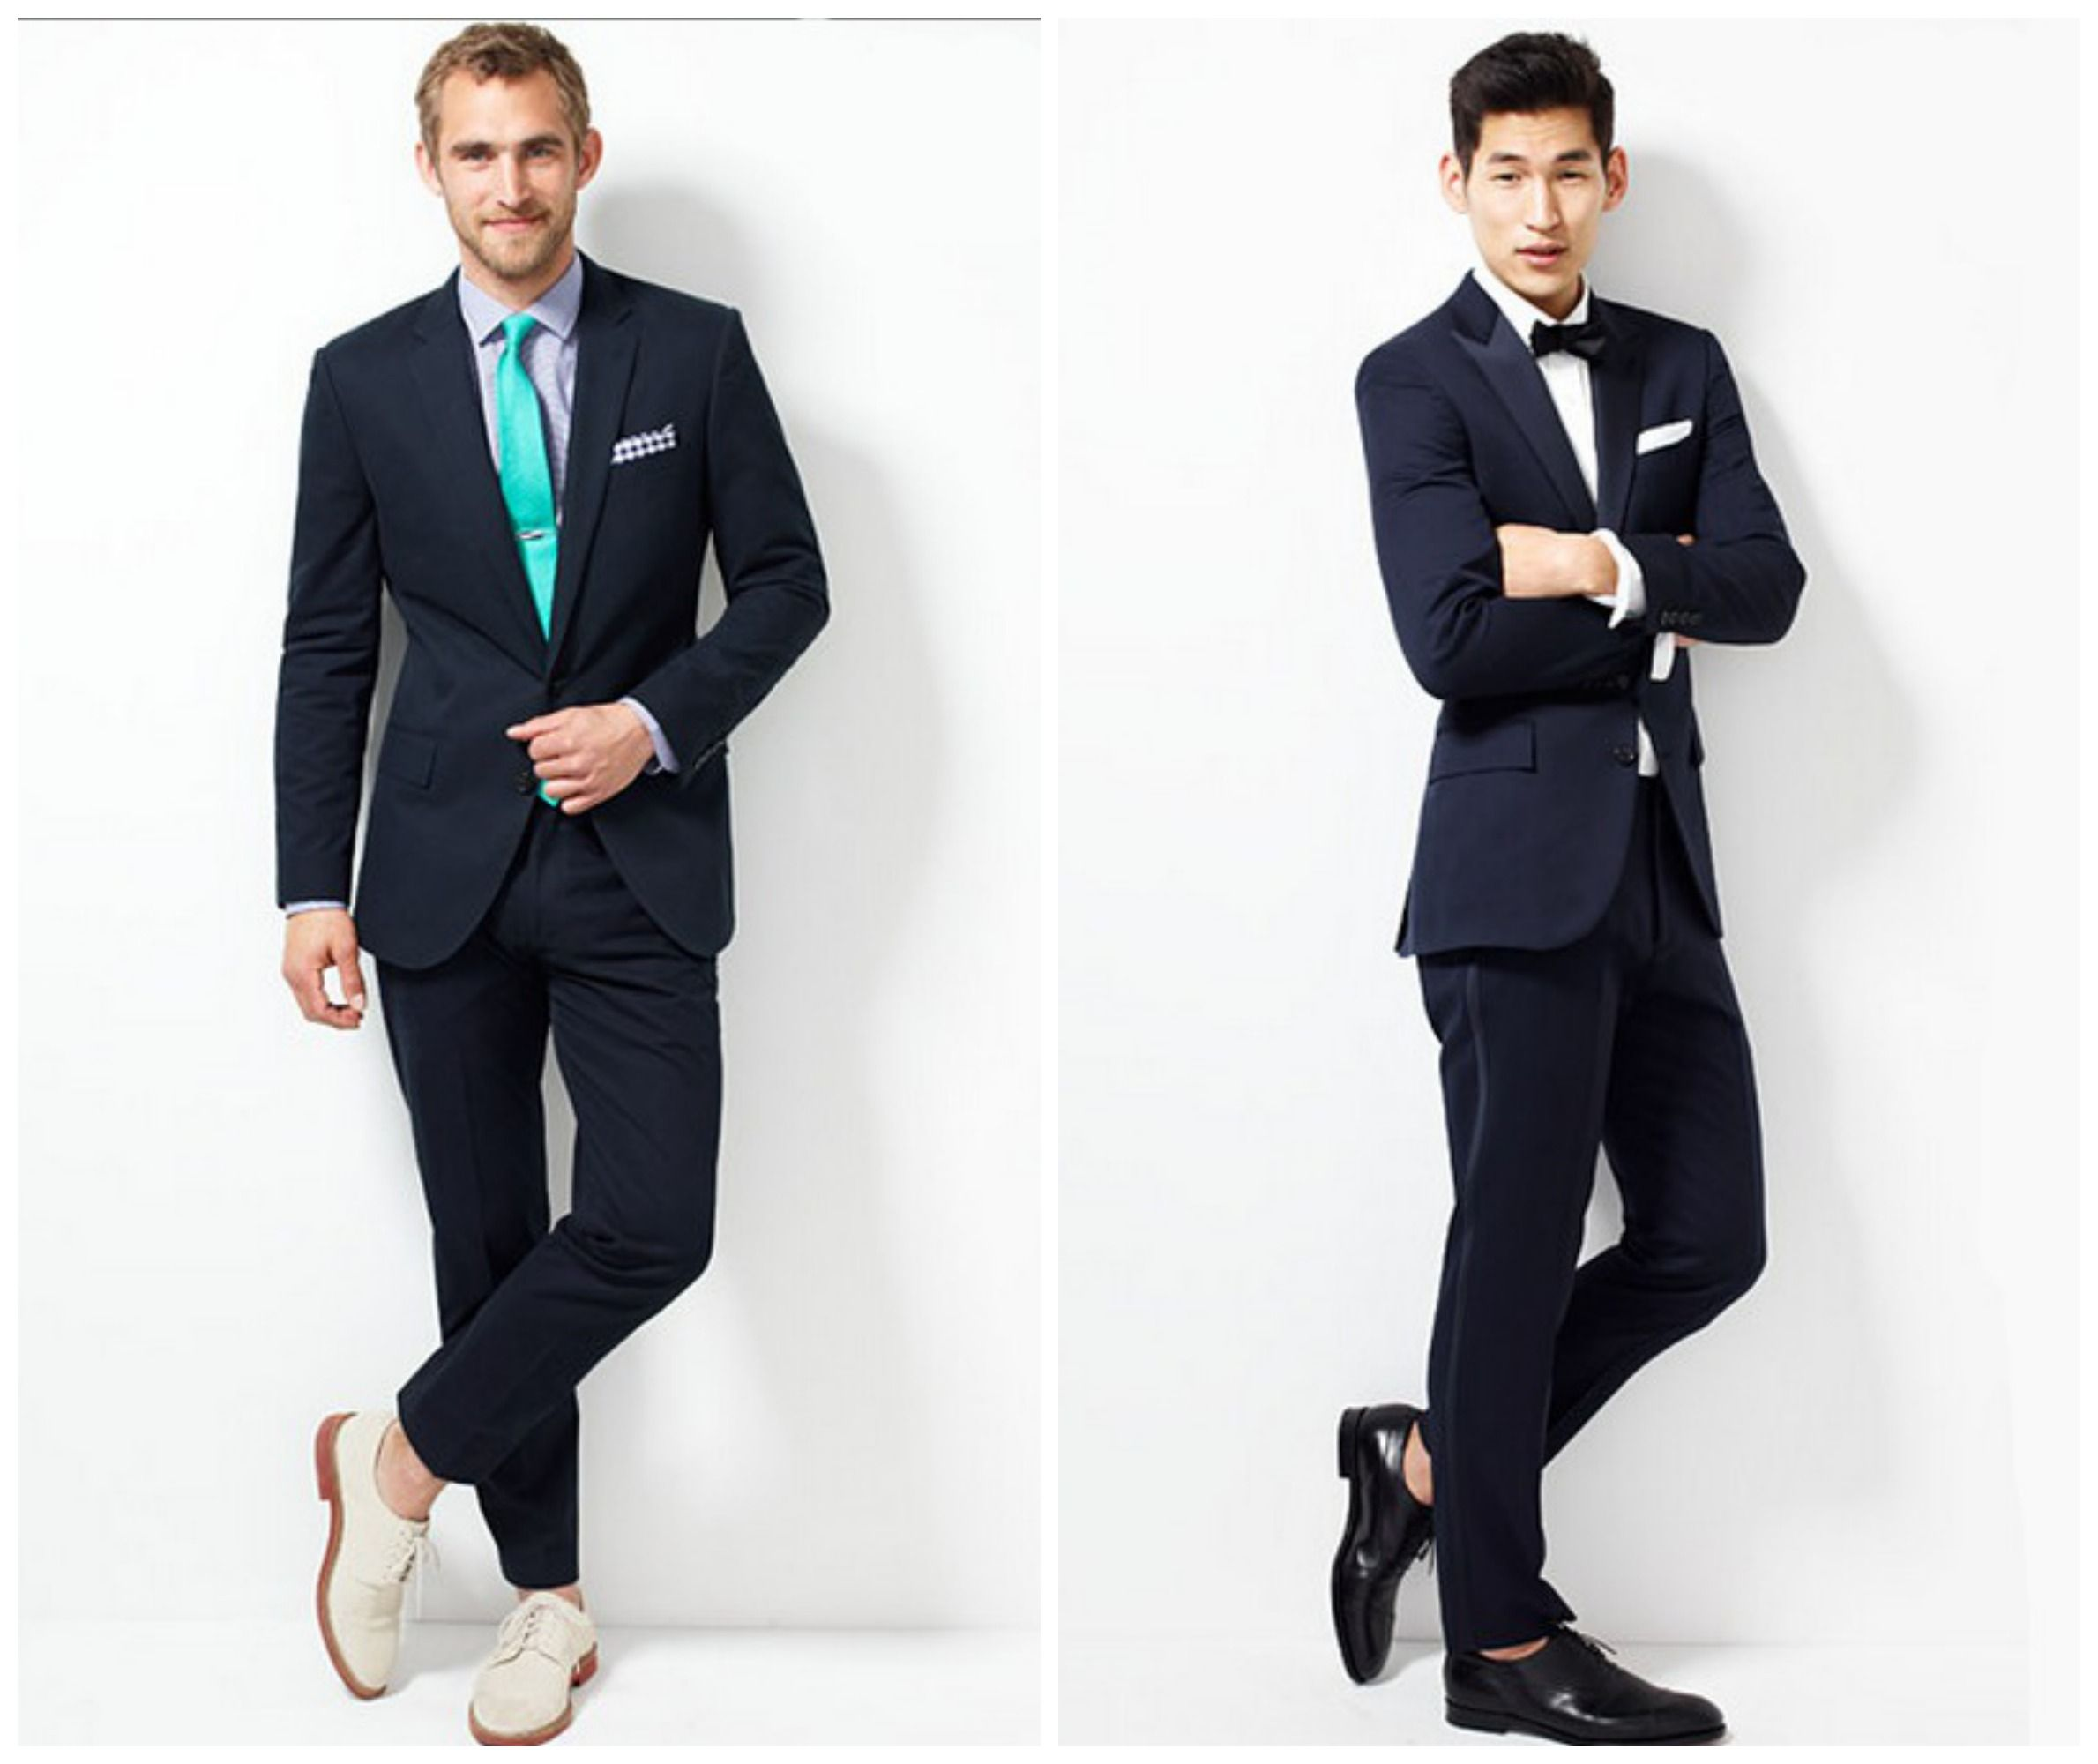 Ideas For Groom Outfit카지노알바 SK8000.COM 카지노알바 카지노알바 카지노알바 바카라